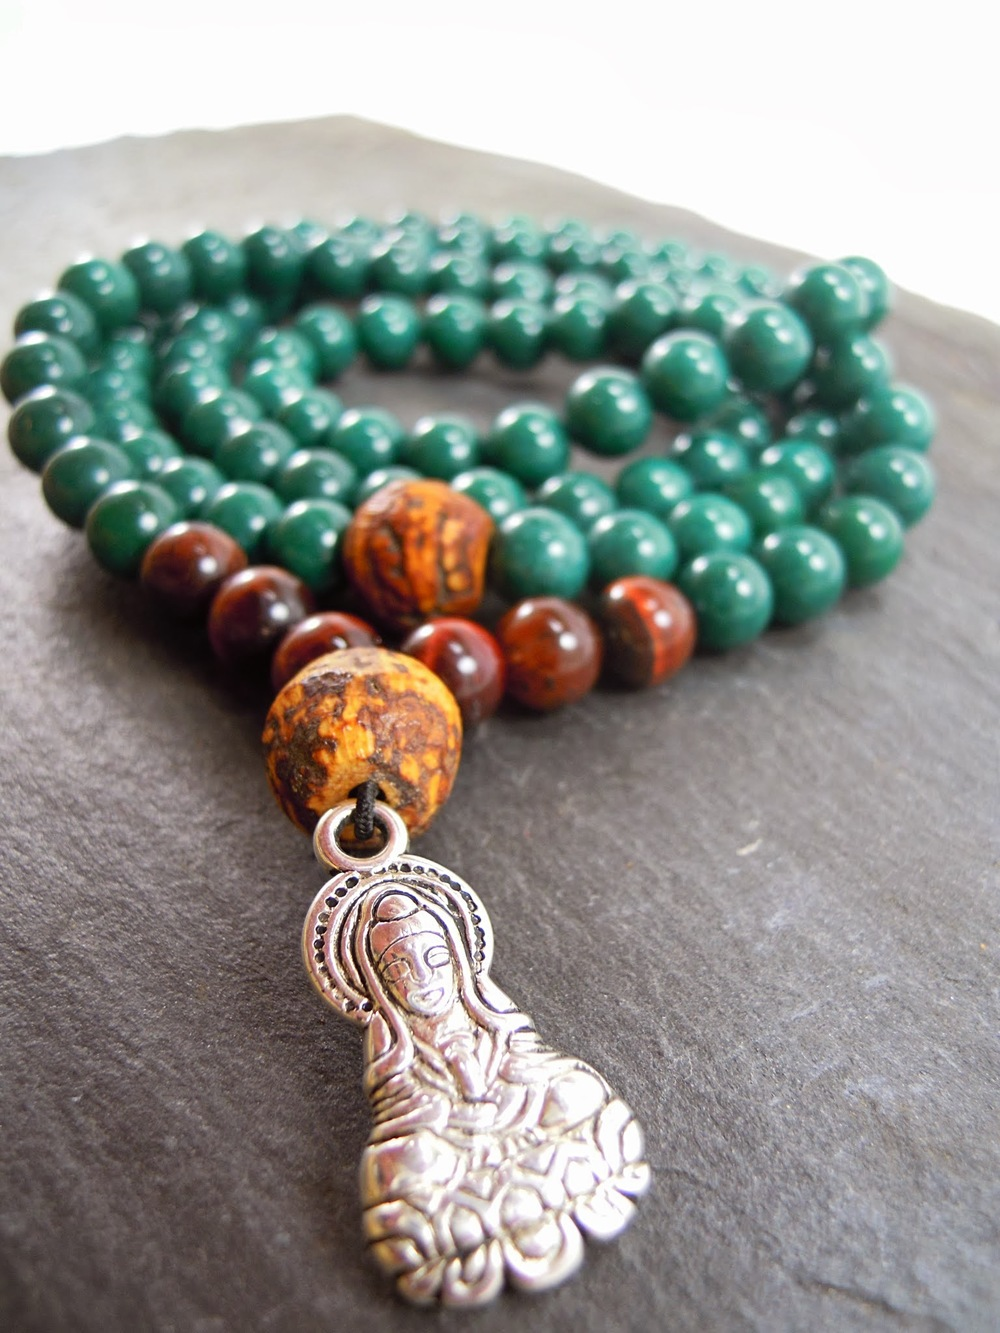 NOW AVAILABLE! Pursuit of Compassion Mala - Mountain Jade, Red Tiger Eye, Bohdi seed, and   Avalokiteśvara, the  bodhisattva of compassion.